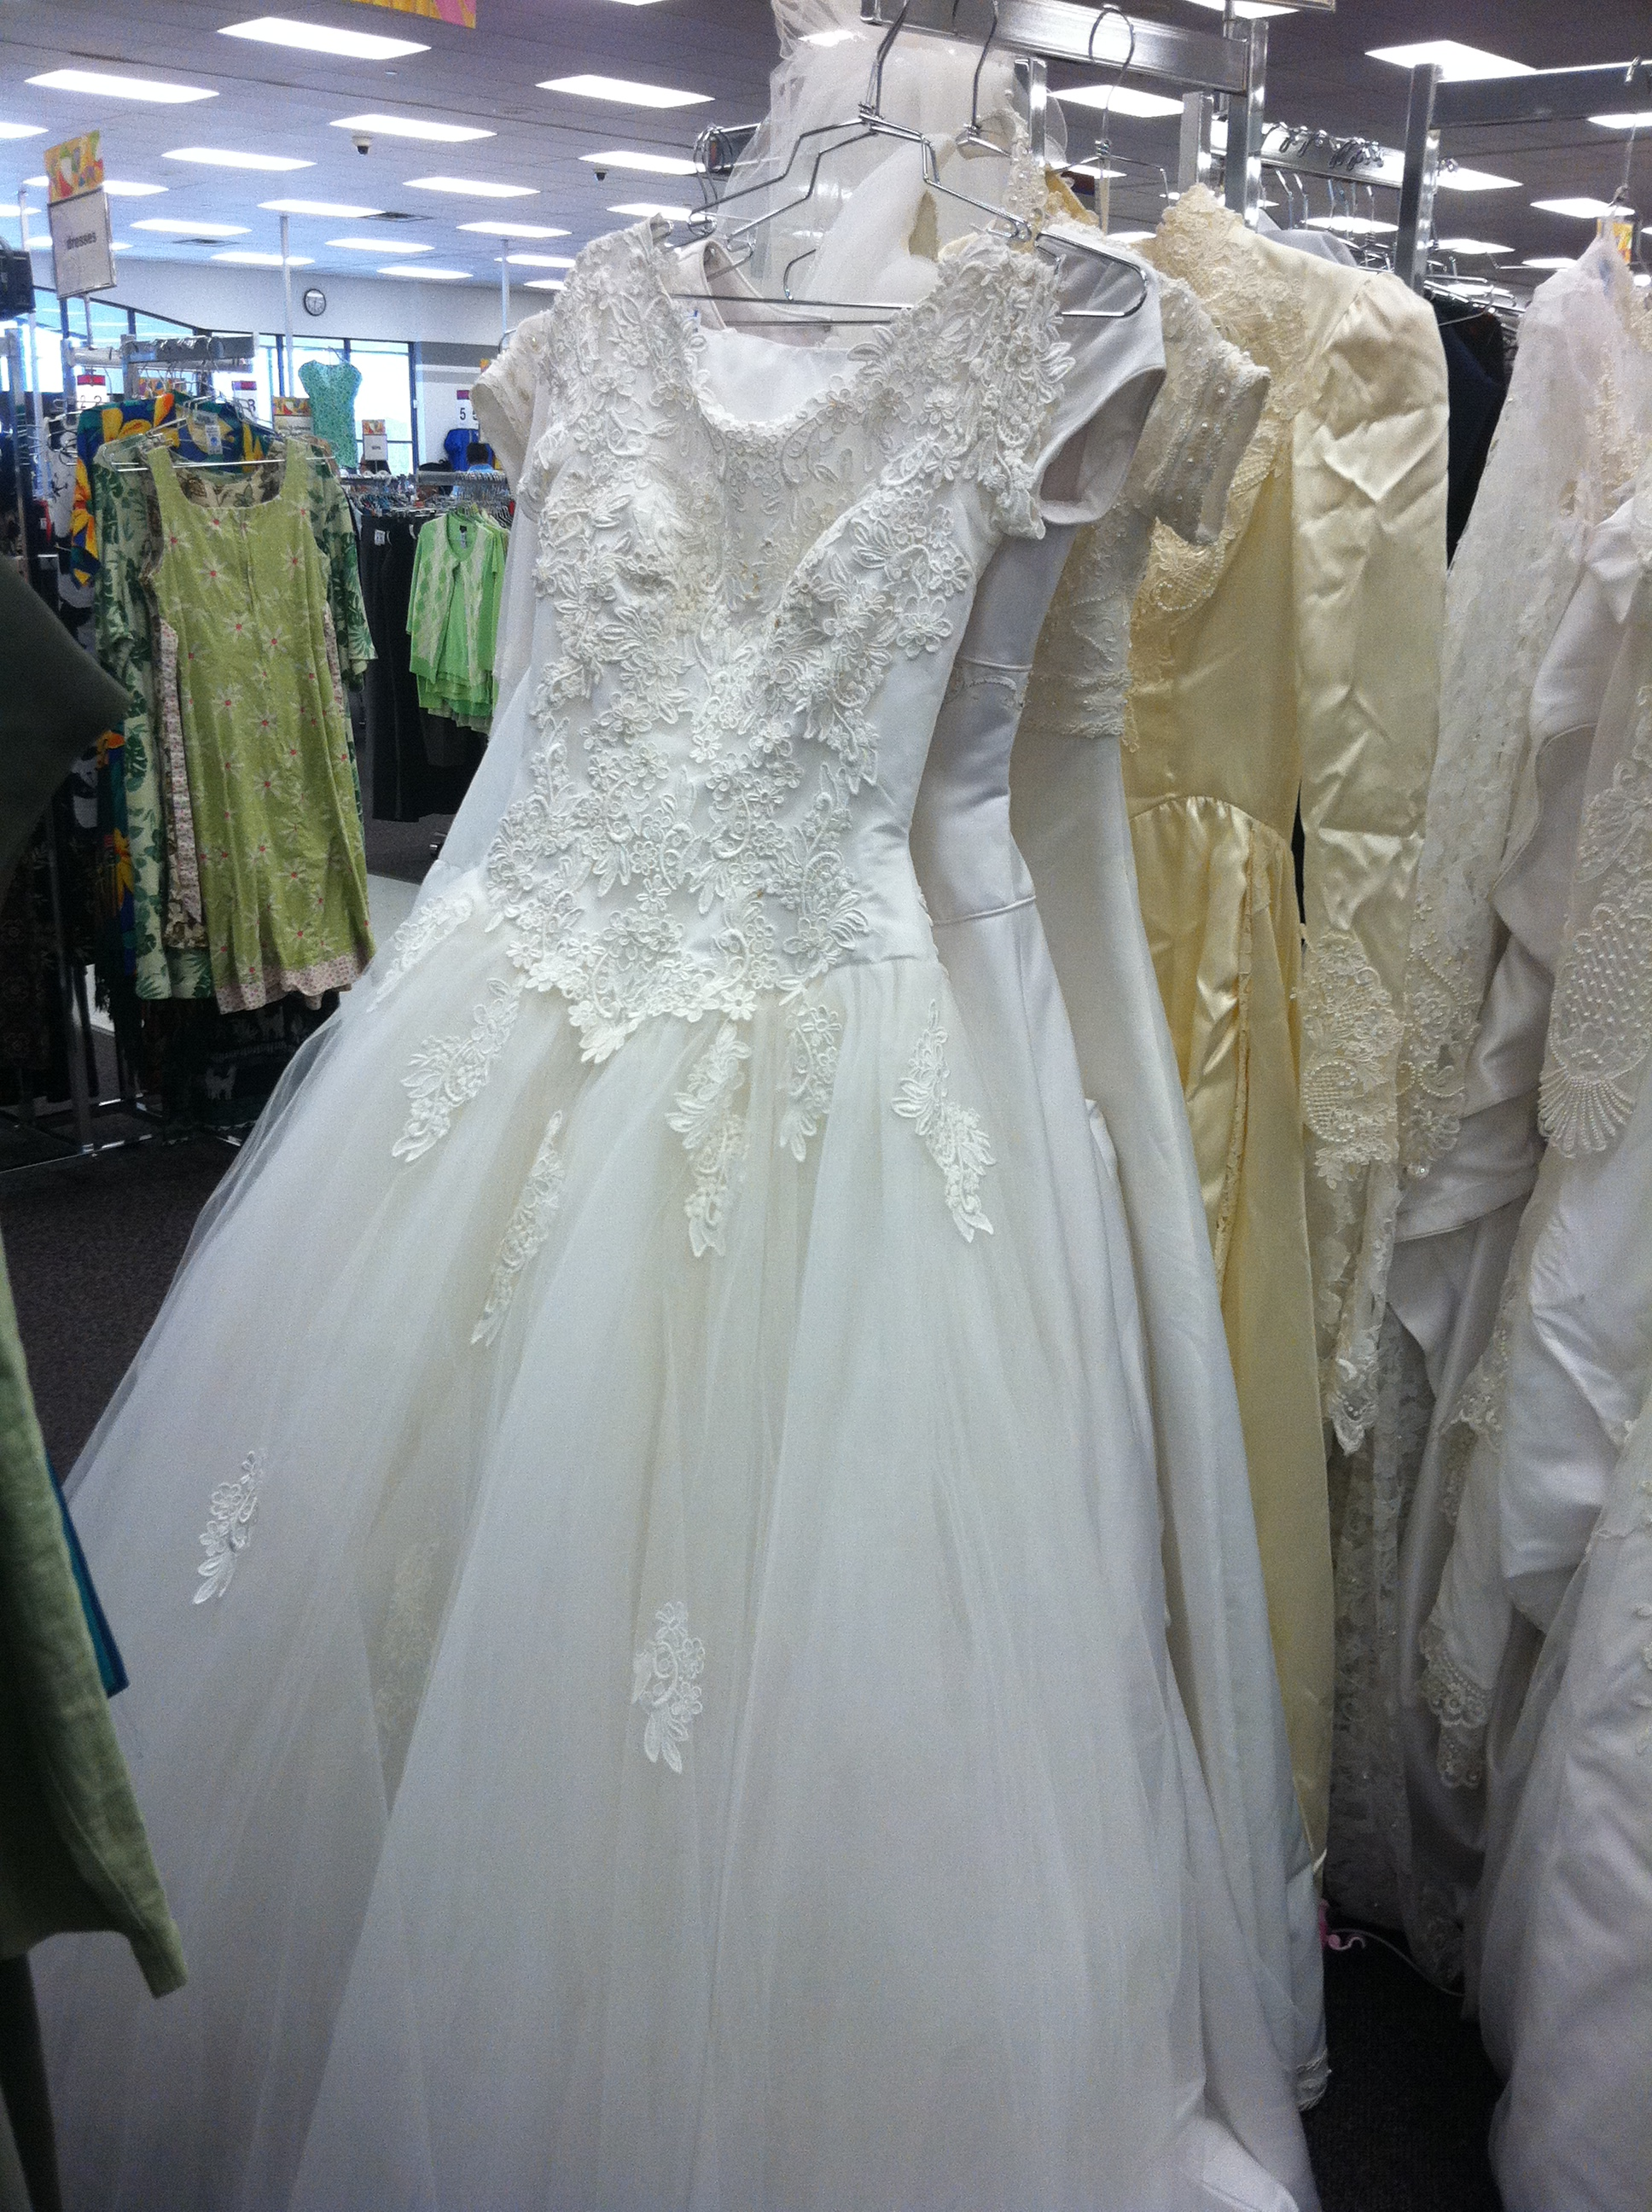 Shopping for a wedding dress don 39 t underestimate this store for Shop online wedding dresses